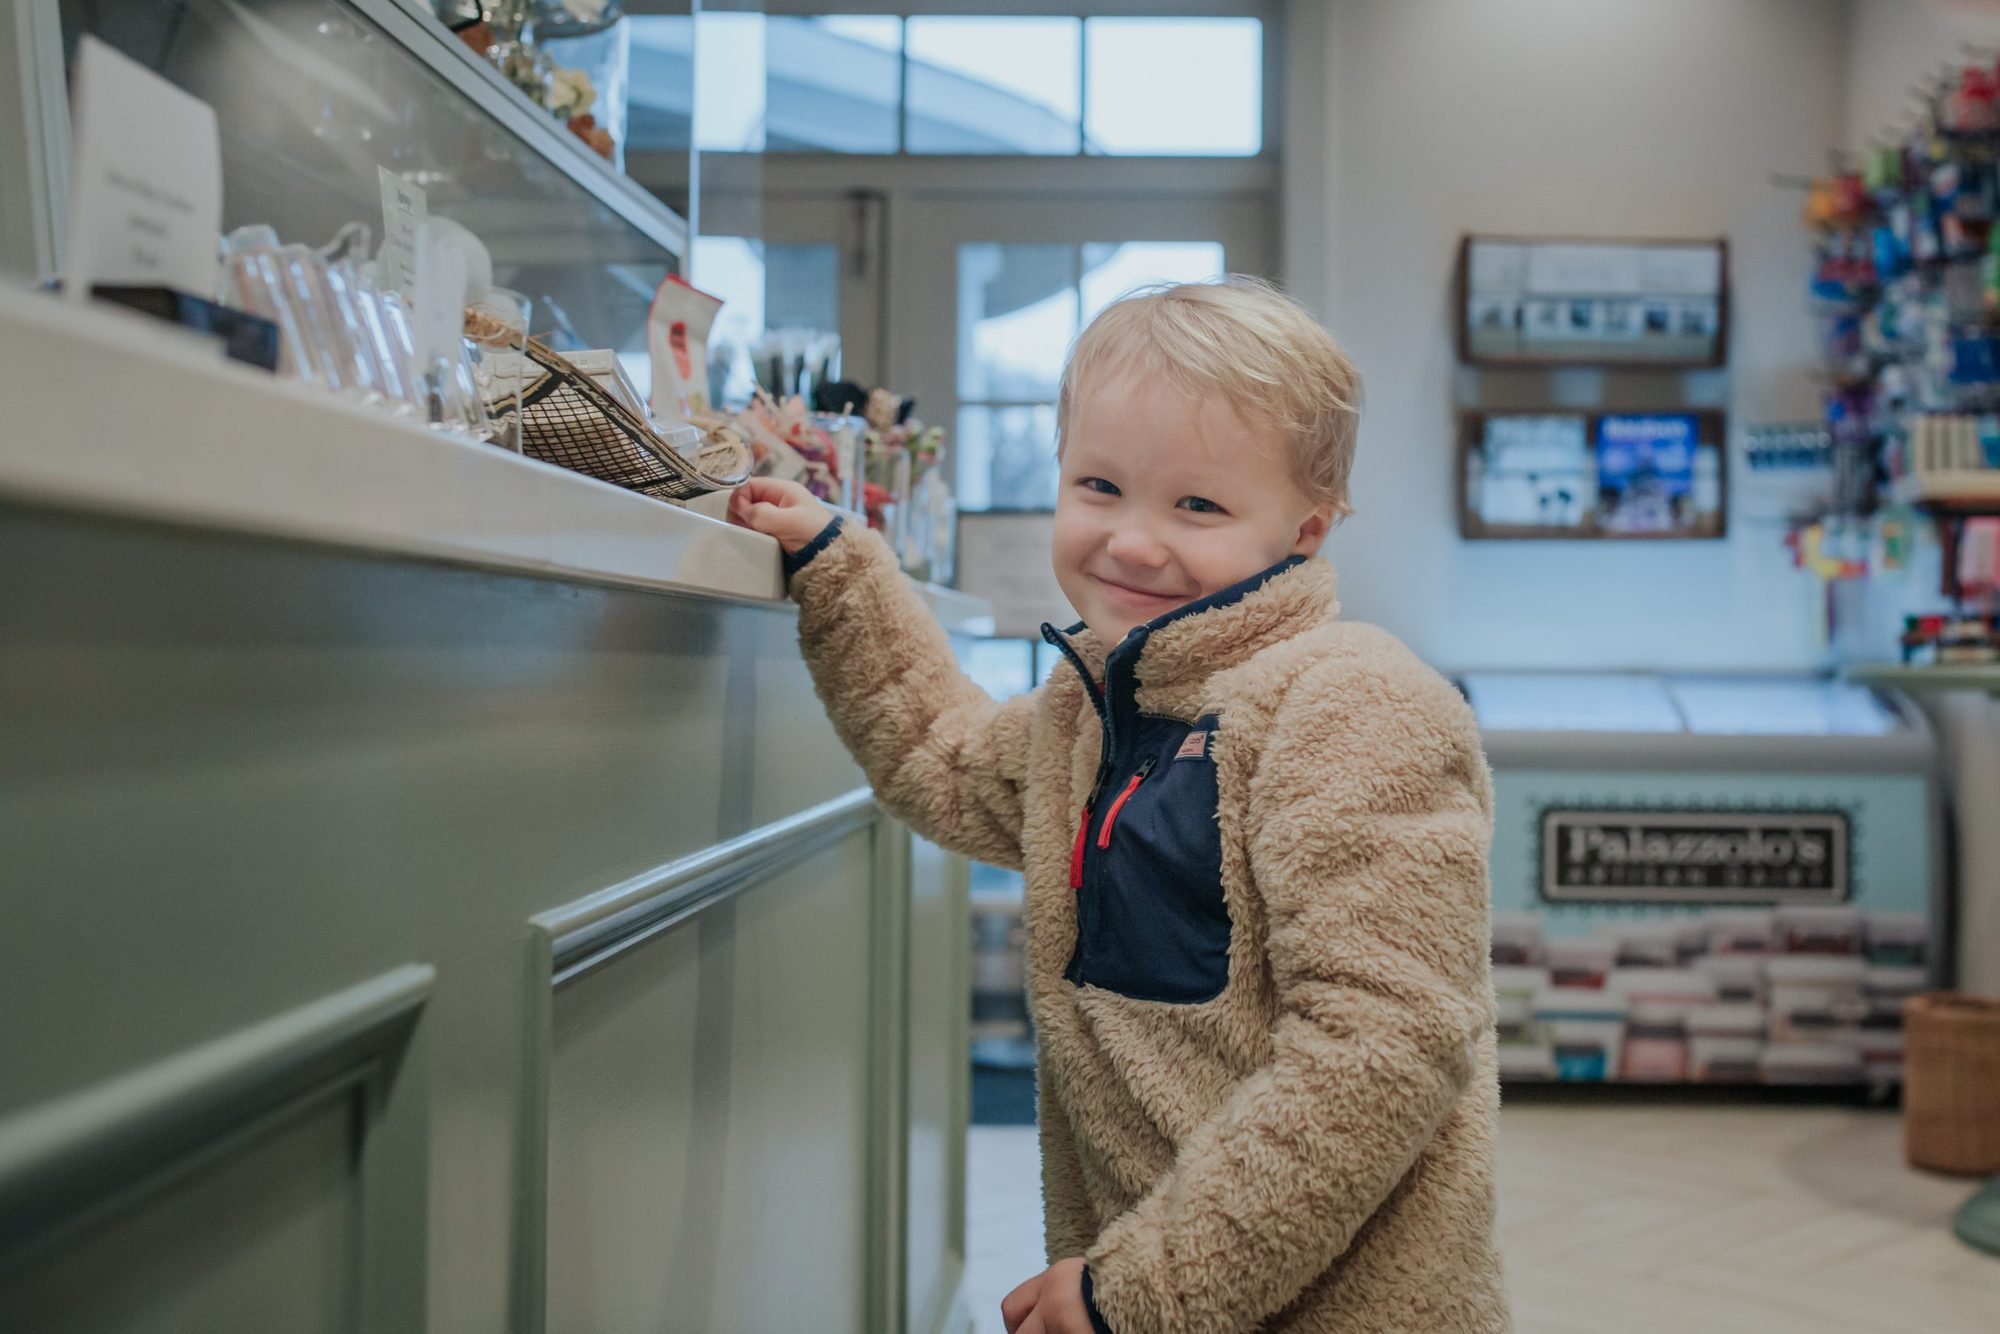 little boy smiling in cafe shop |Inn at Bay Harbor by popular Michigan travel blog, The House of Navy: image of a little boy in a cafe shop.